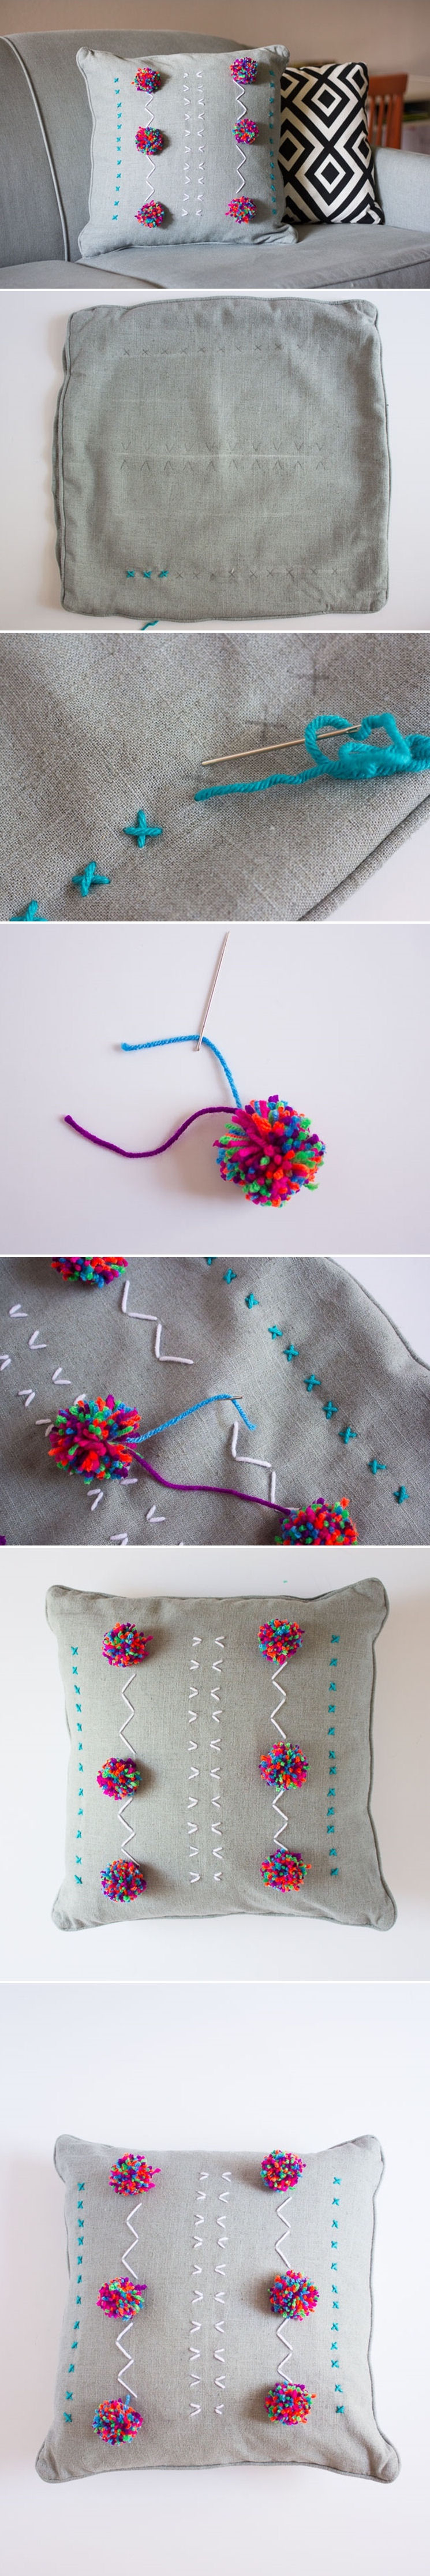 Diy embroidered pillows pictures photos and images for